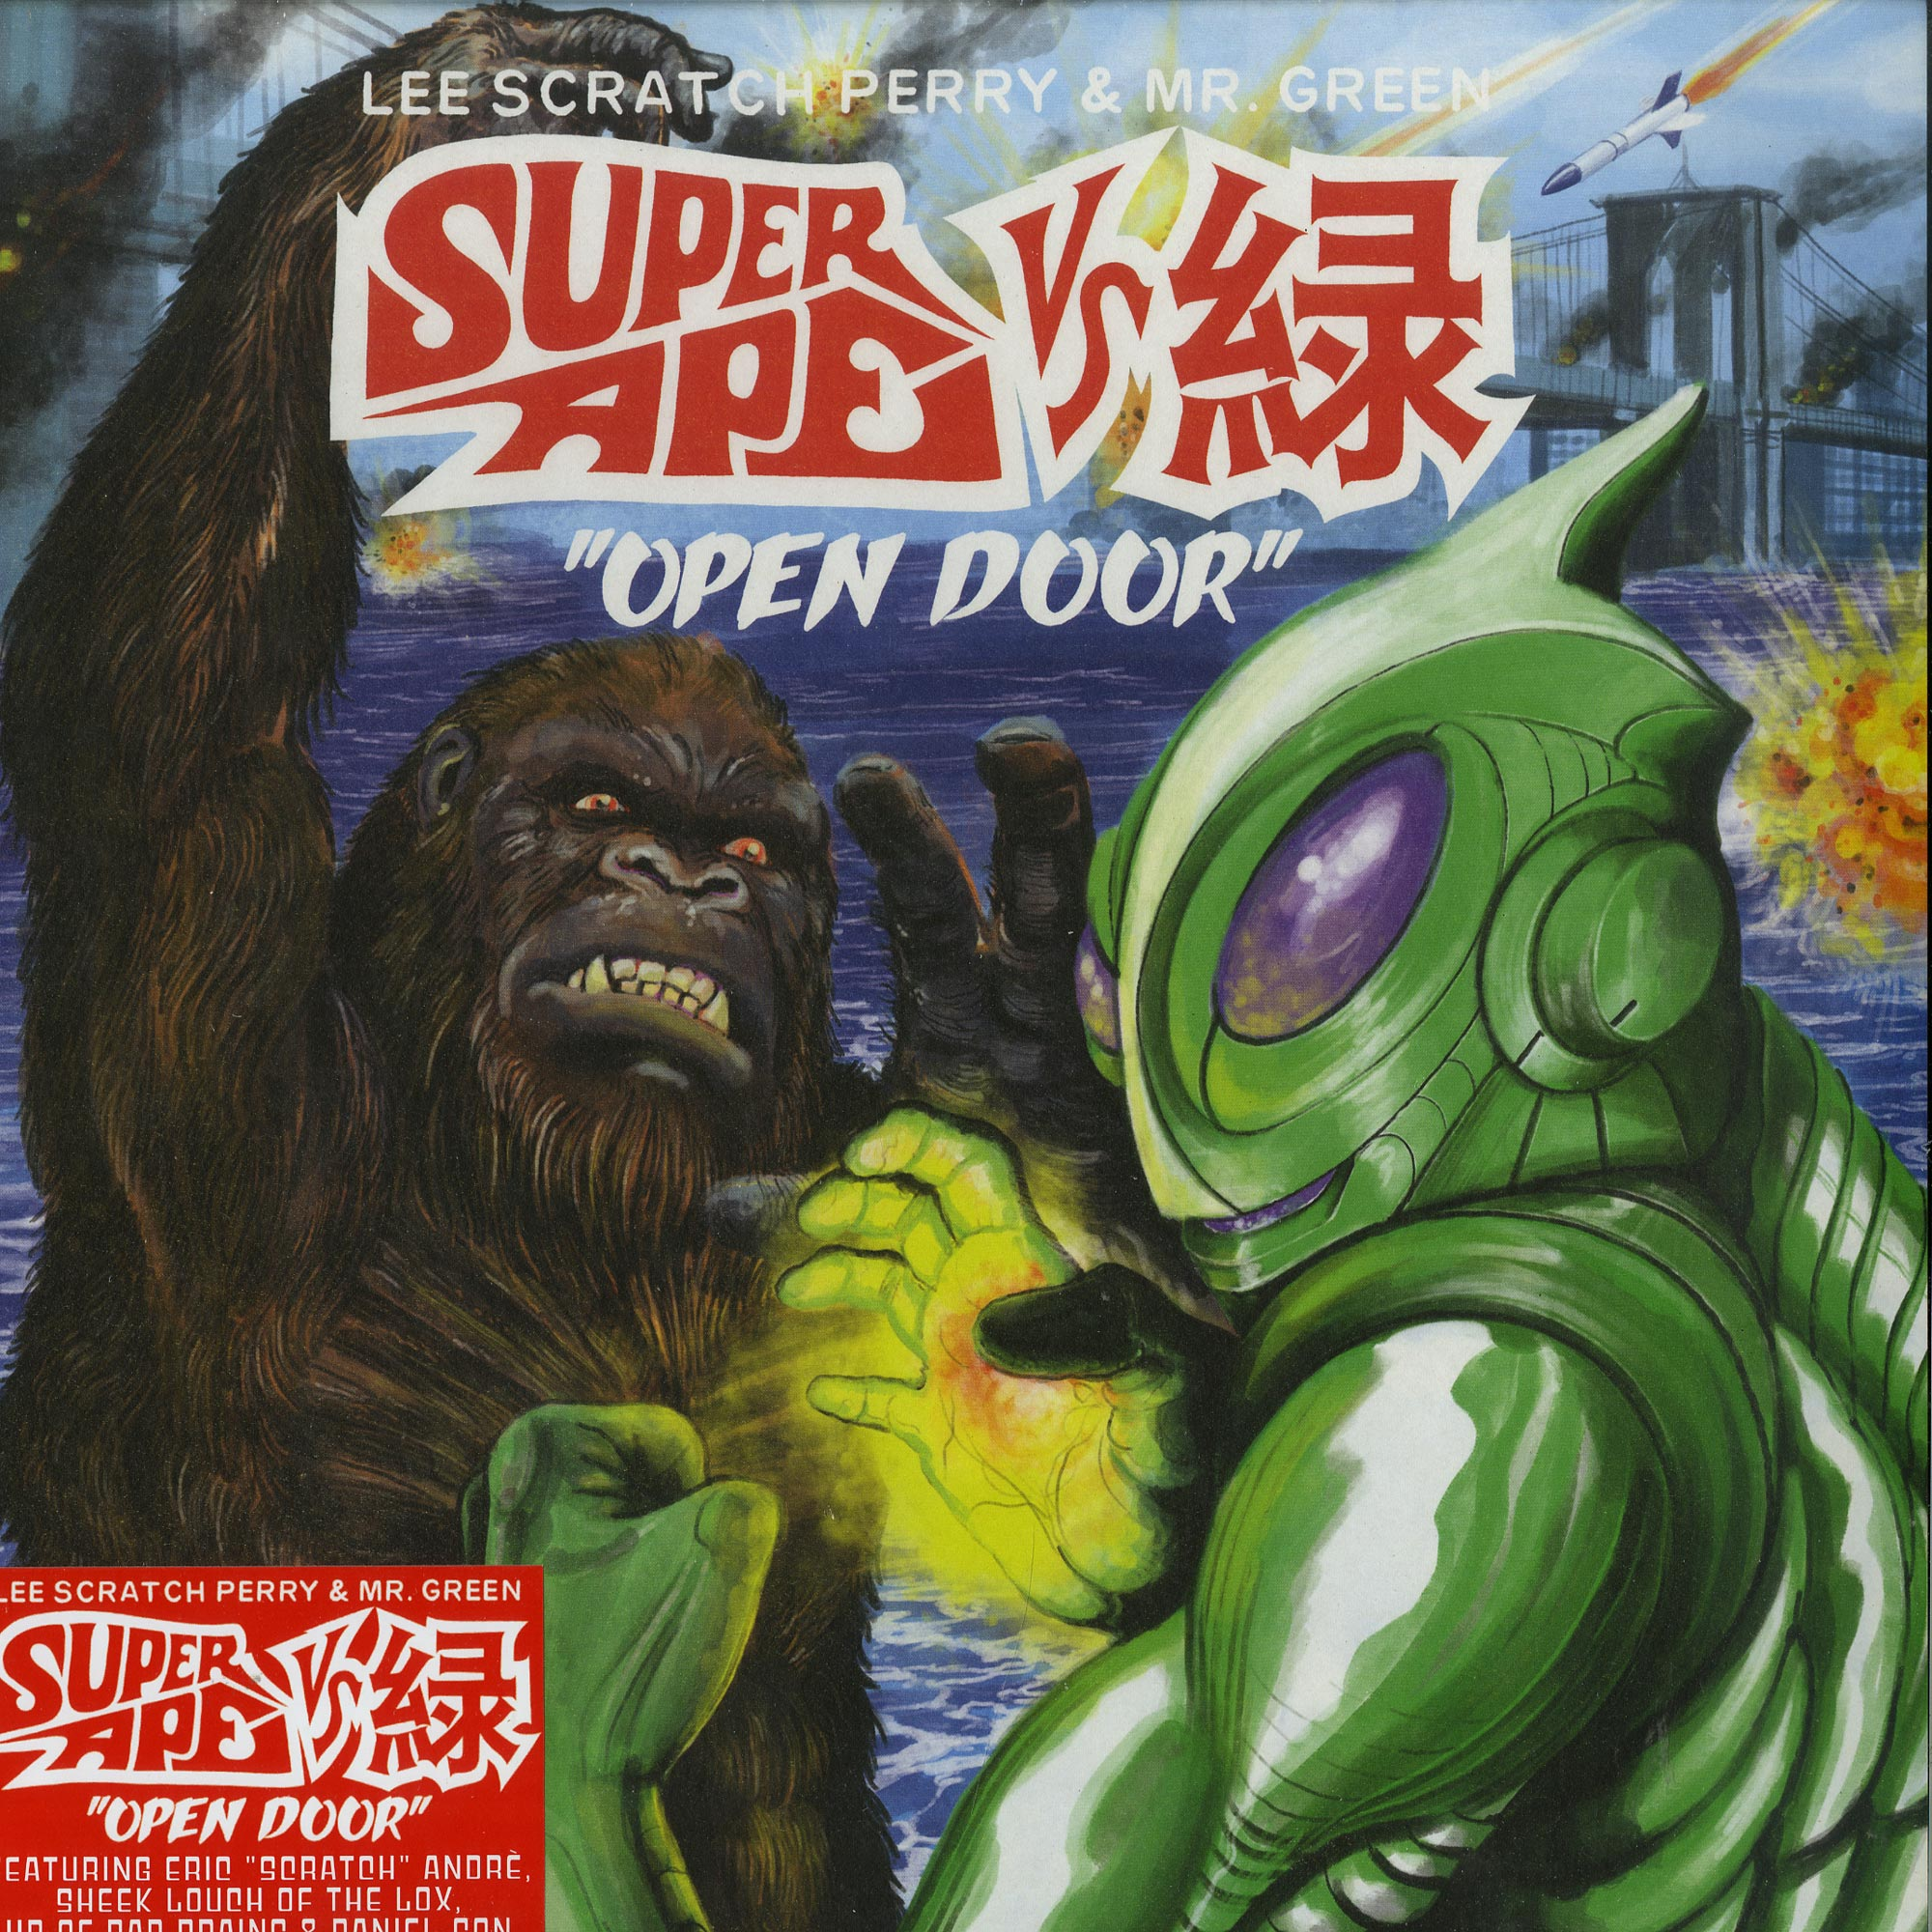 Lee Perry & Mr. Green - SUPER APE VS. GREEN: OPEN DOOR